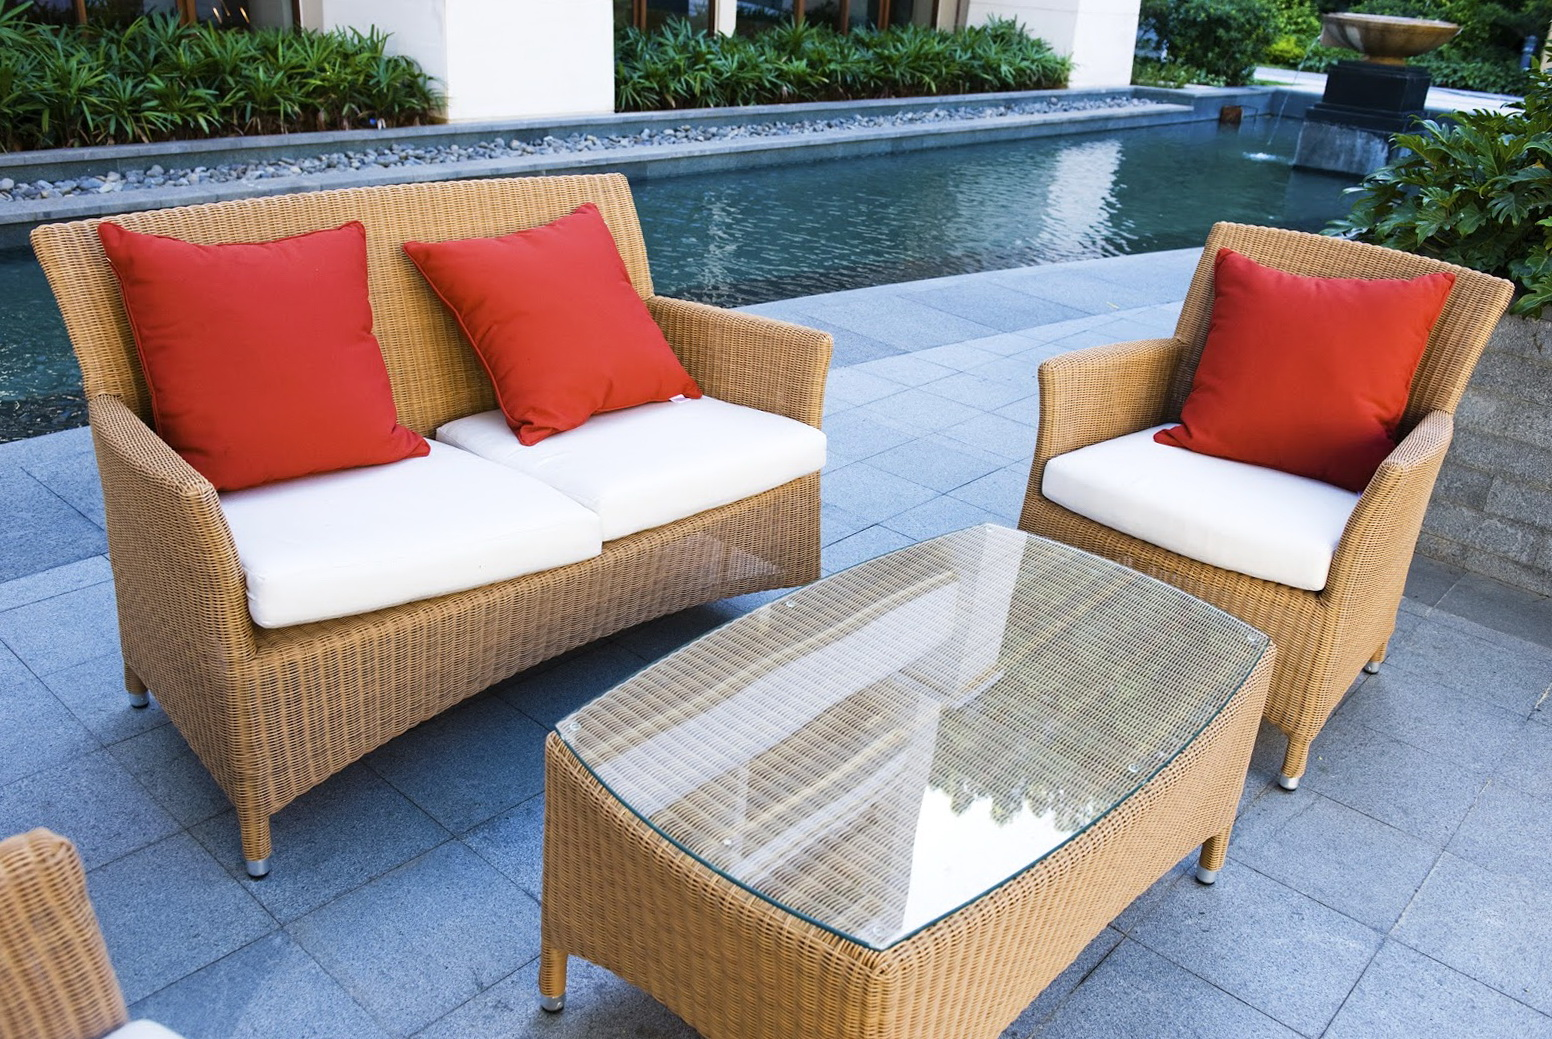 Cleaning Outdoor Cushions With Borax Home Design Ideas